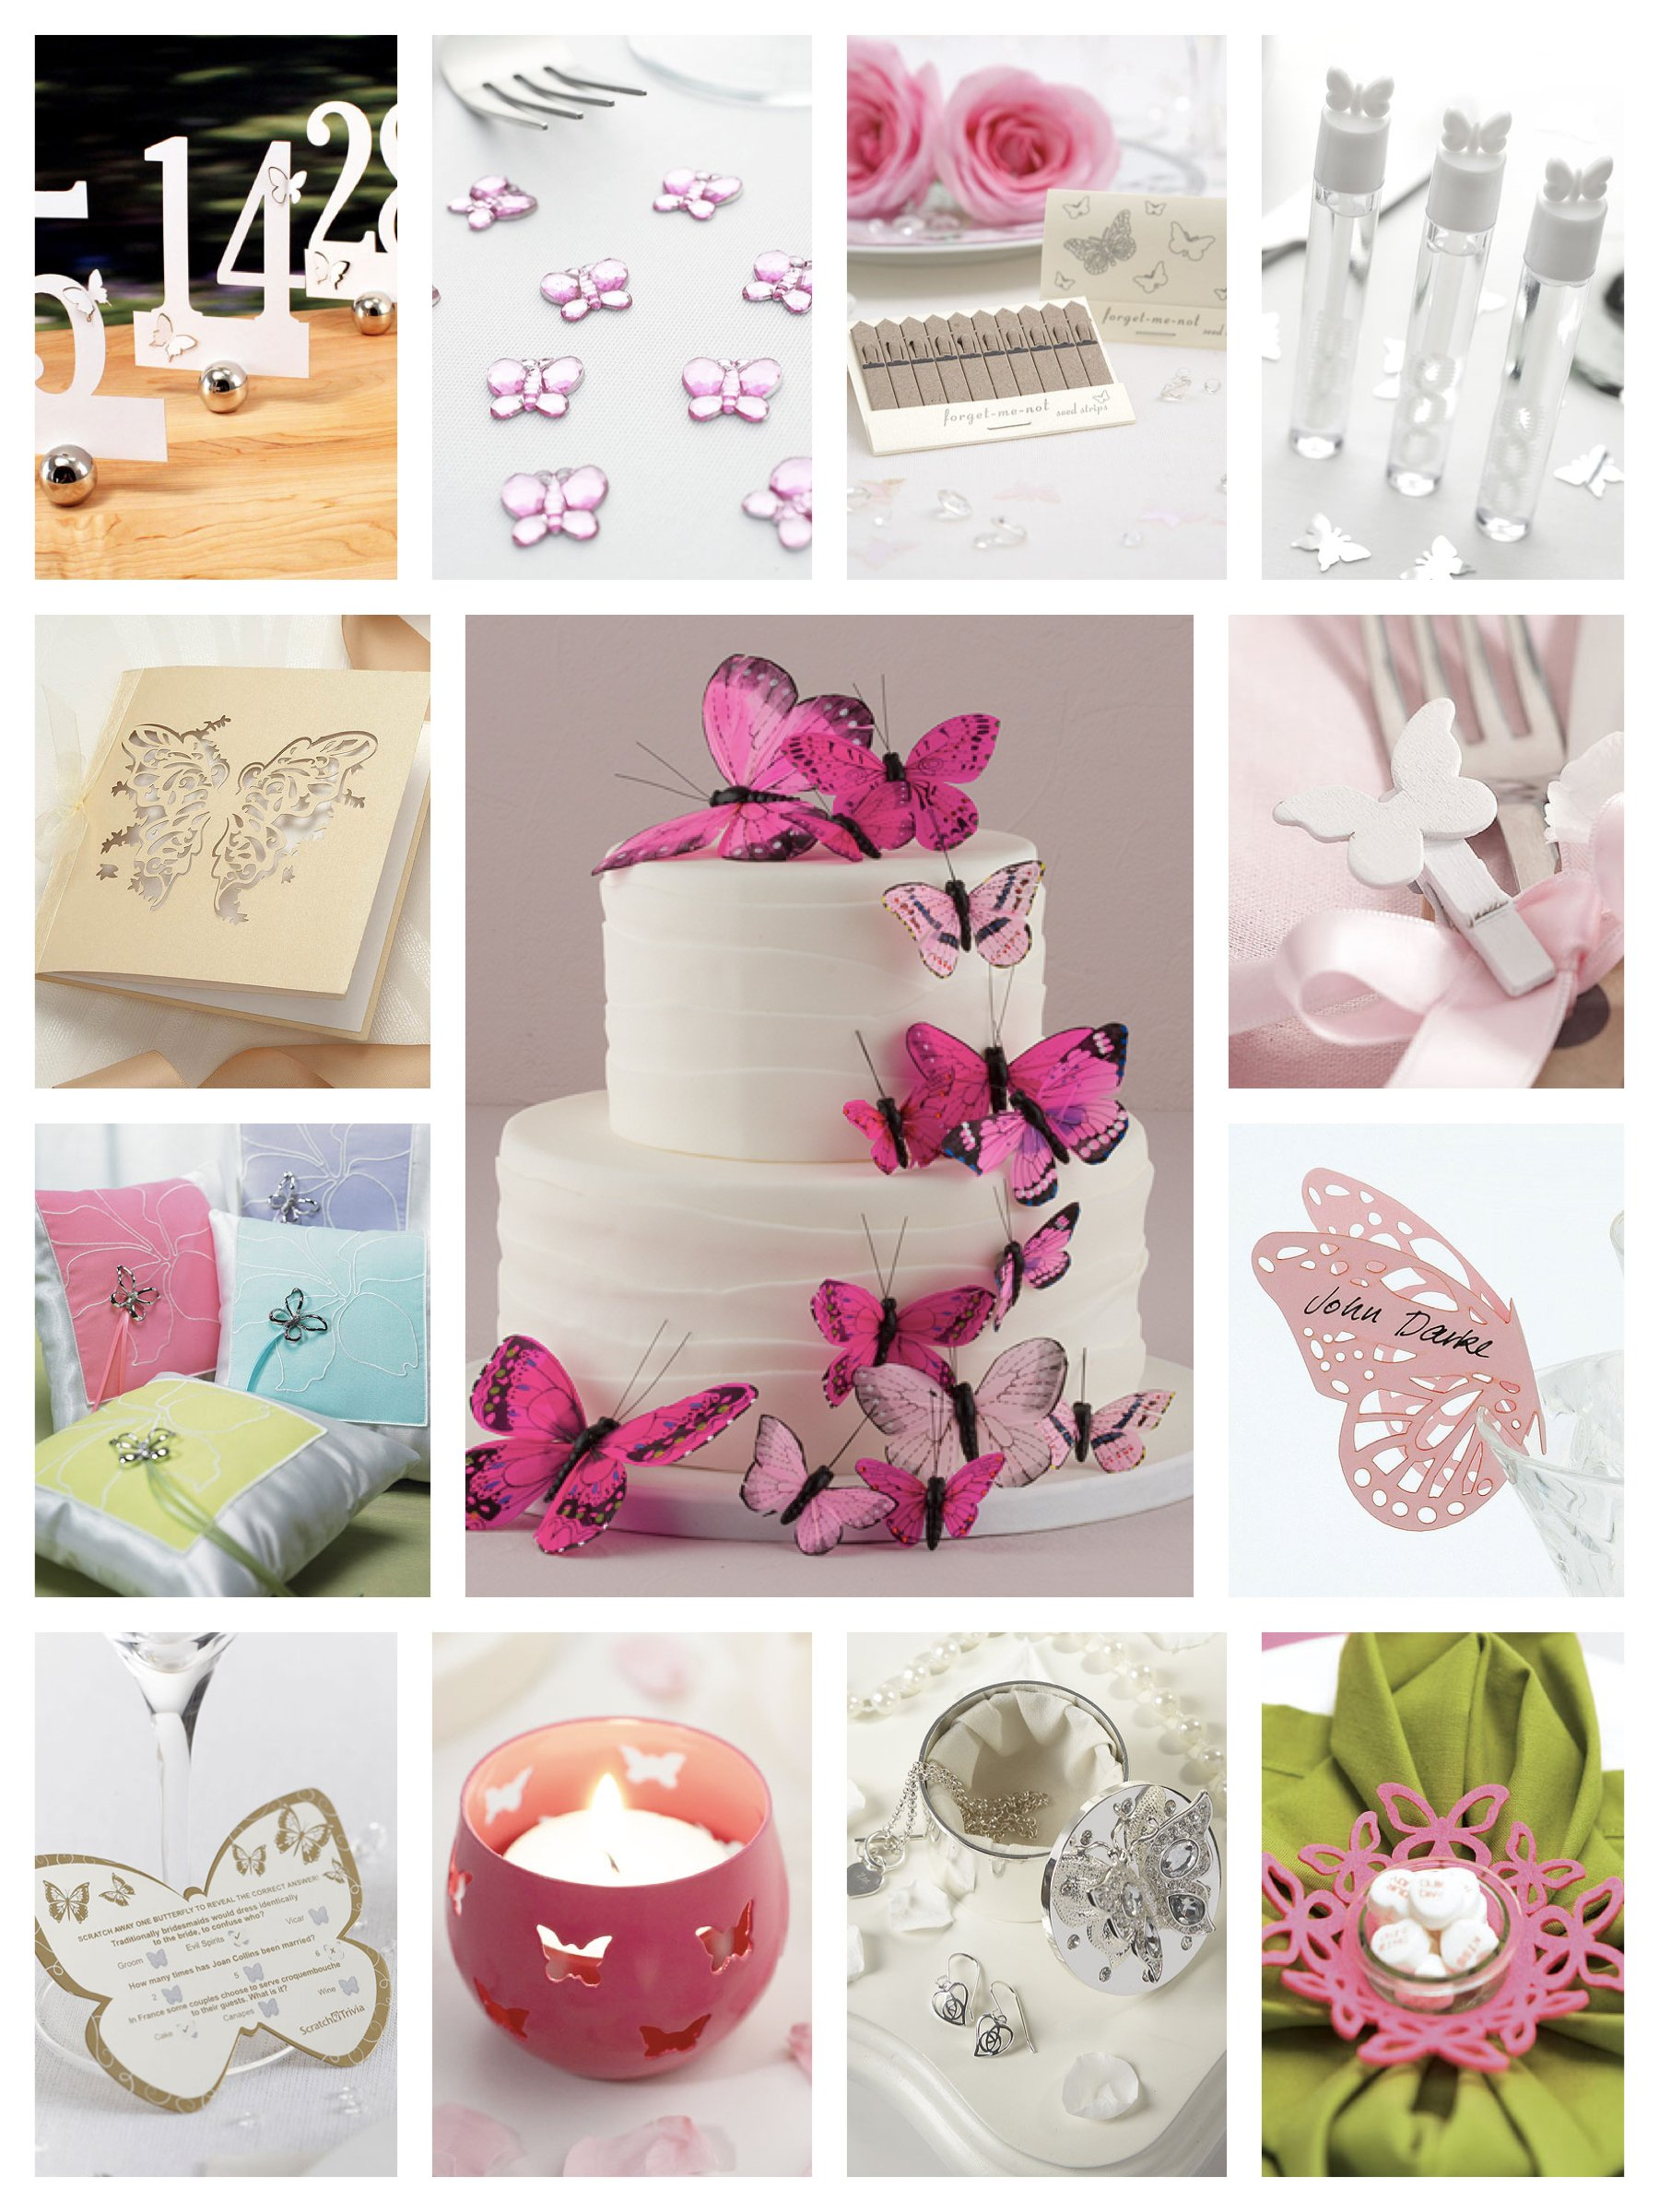 Butterfly Party Planning Ideas Supplies Decorations Favors